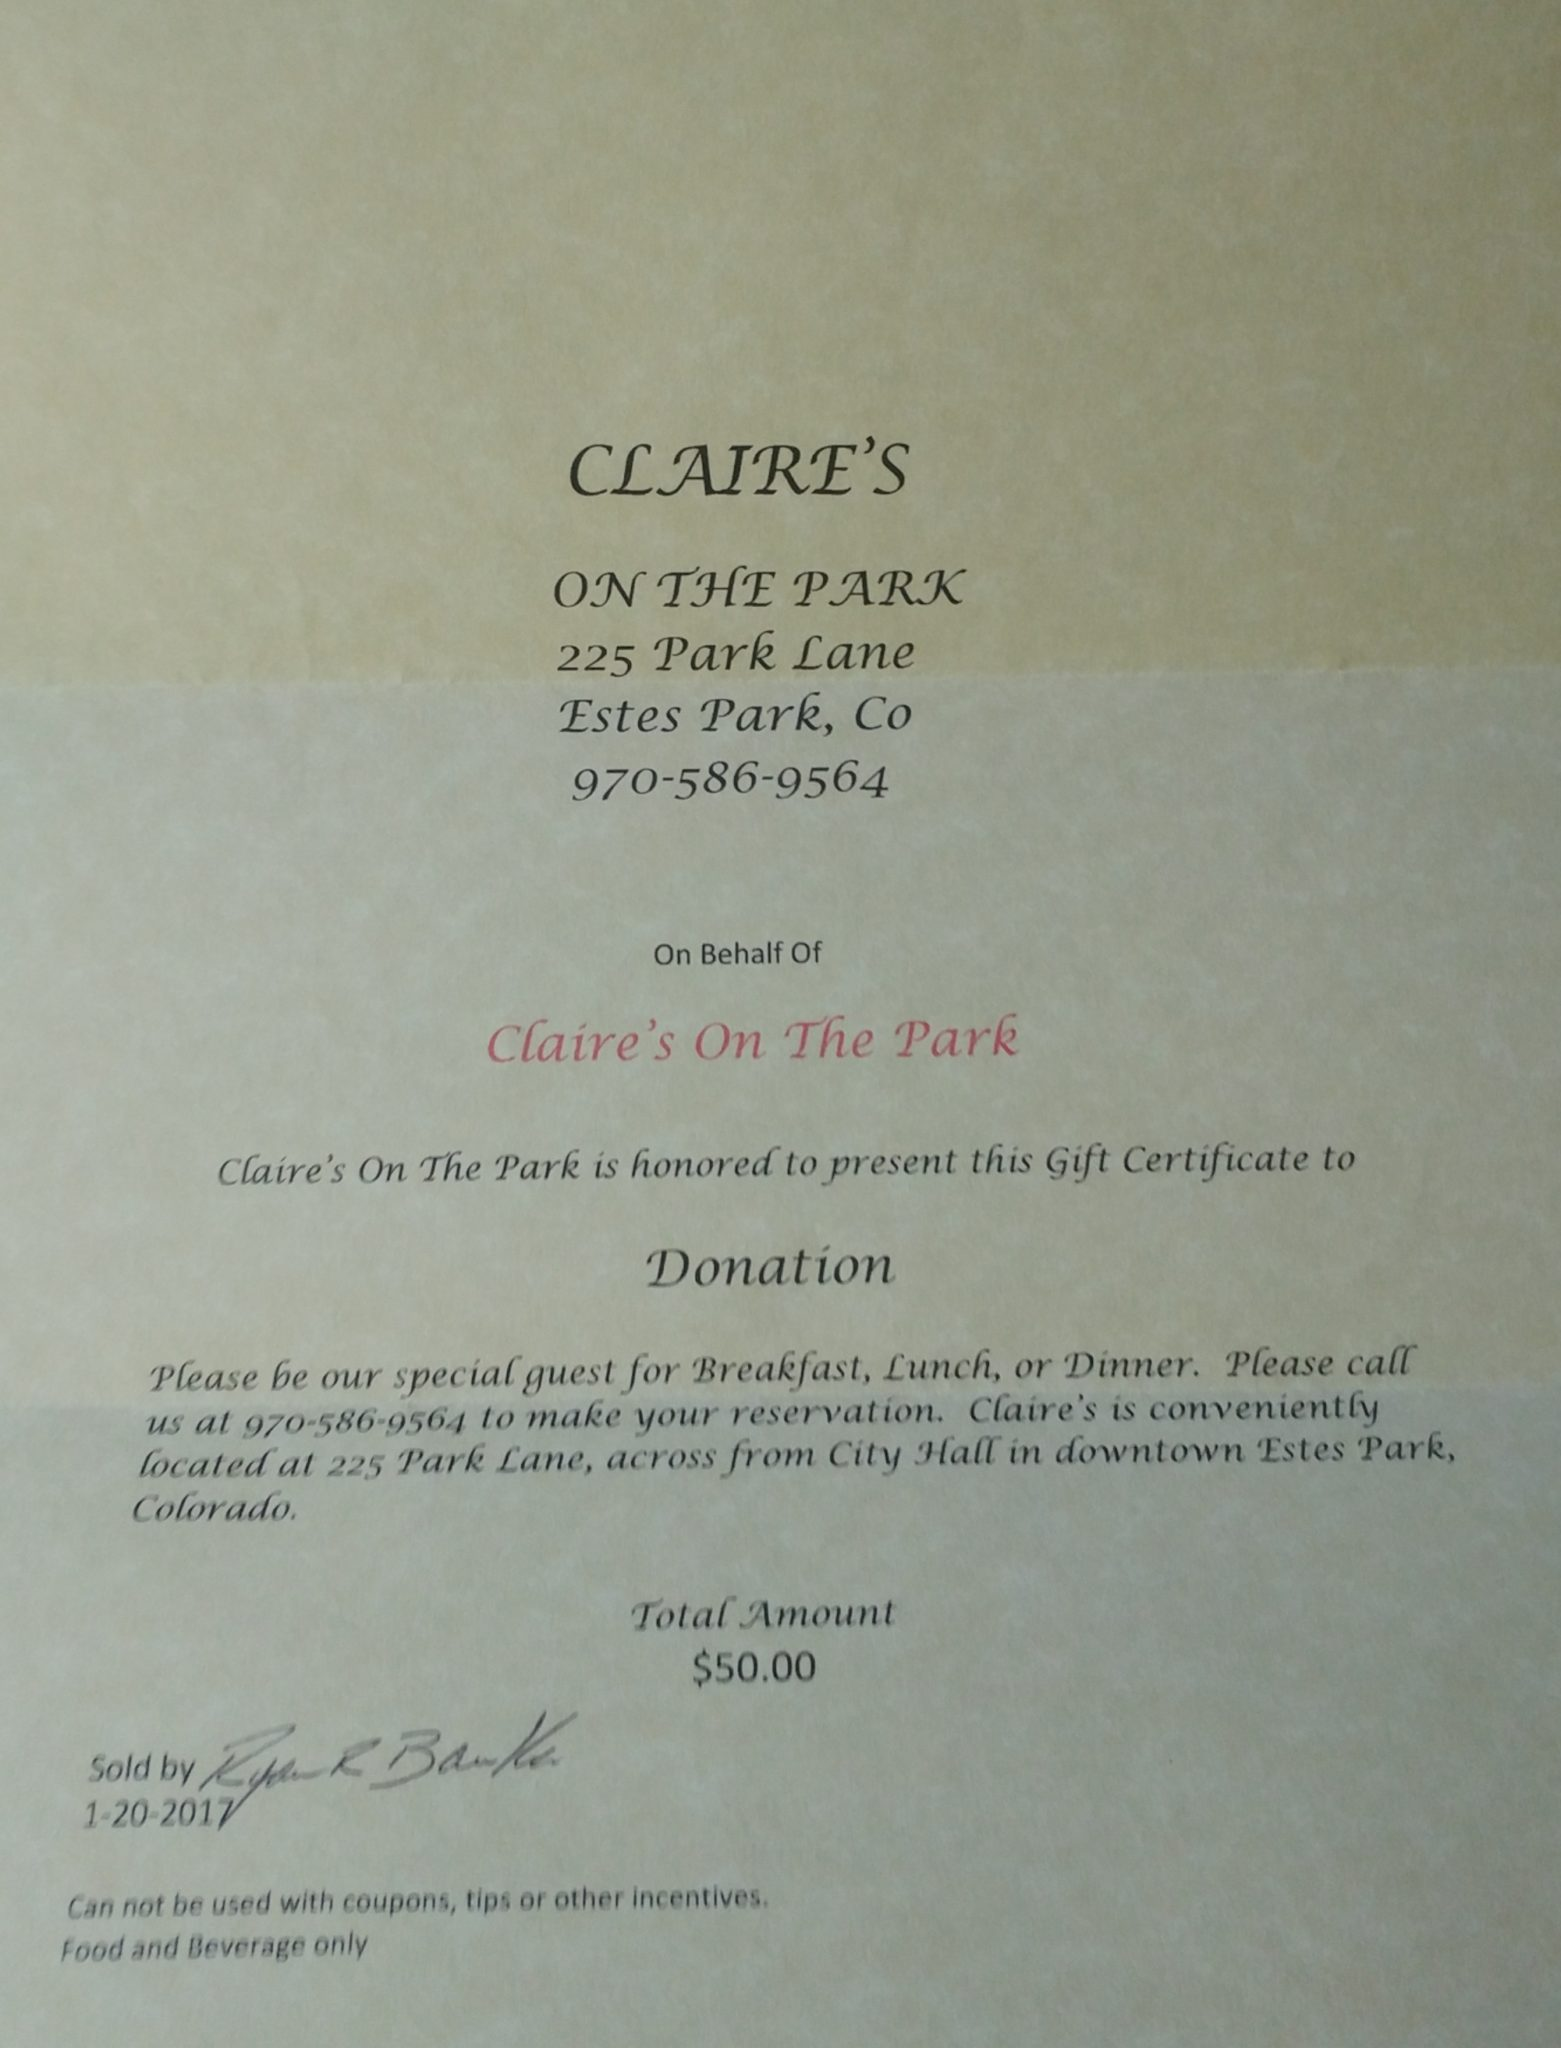 Claires On The Park Certificate 50 Value Animal Rescue Of The